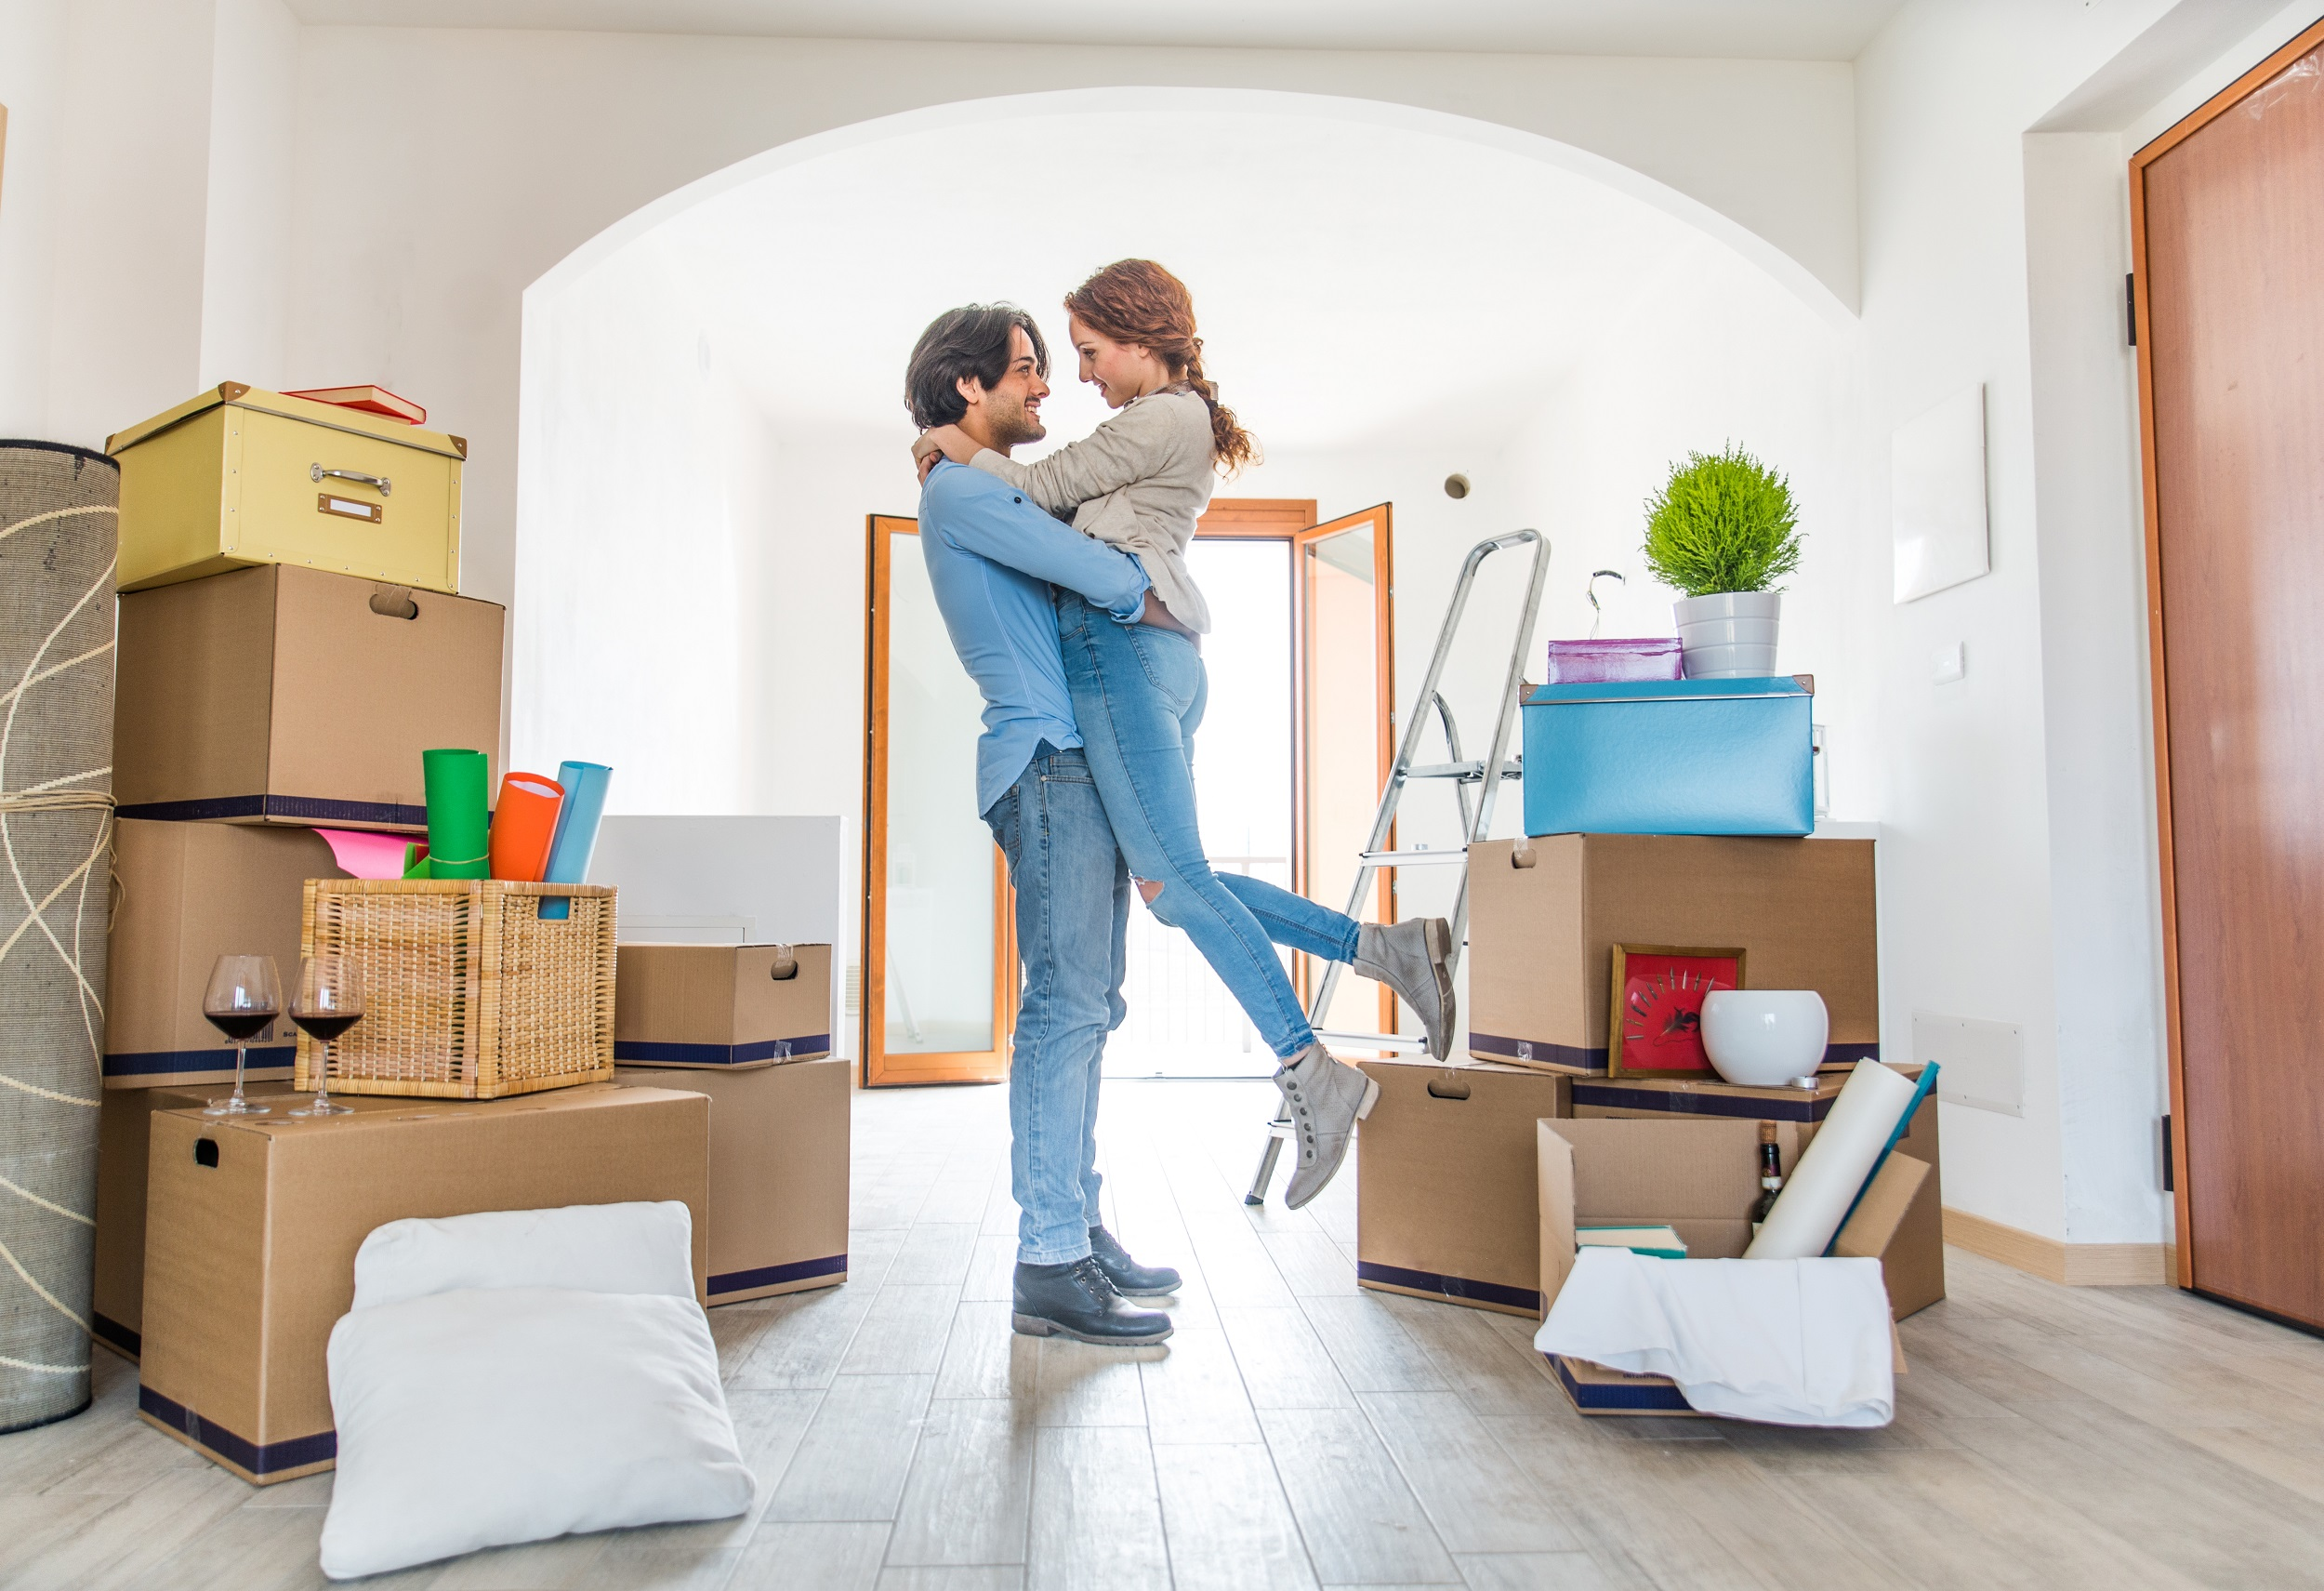 4 Ways to Safeguard Your Relationship Through a Move